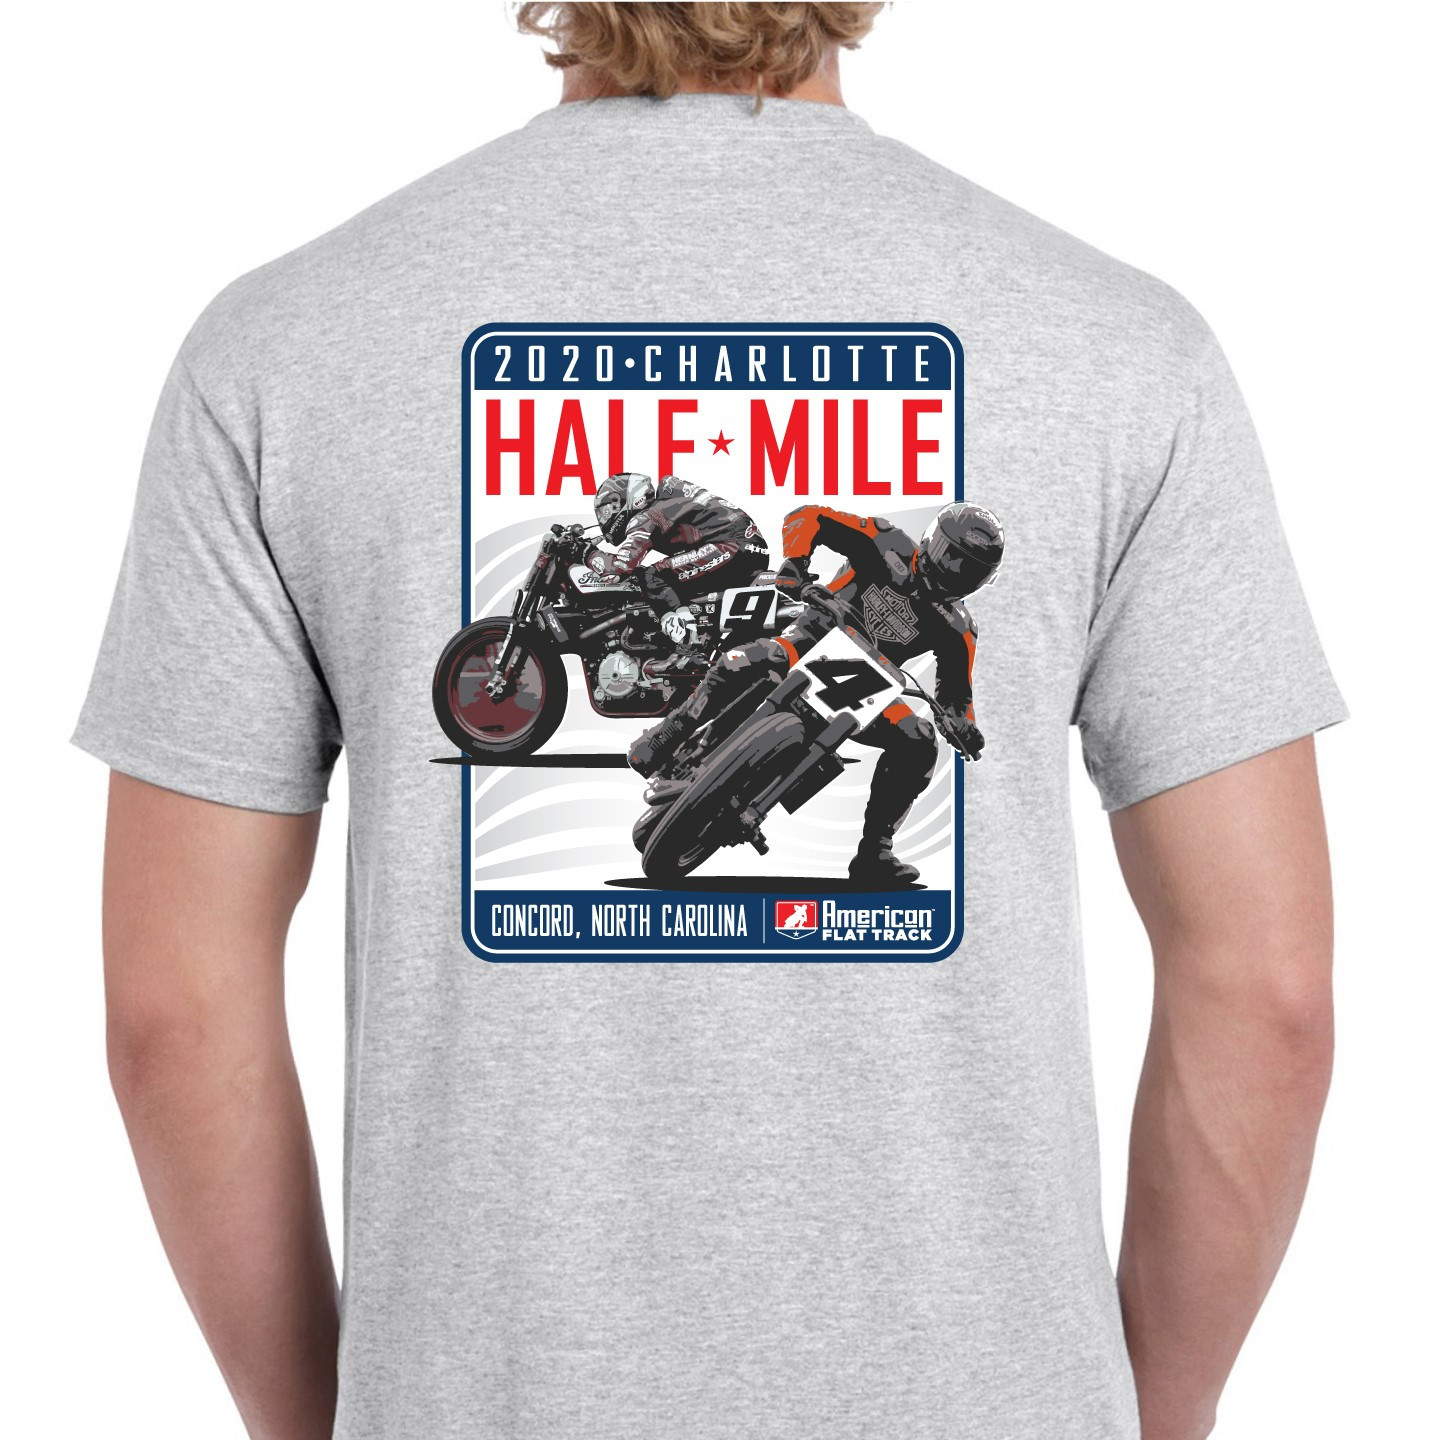 2020 Charlotte Half-Mile Men's Grey Event T-Shirt